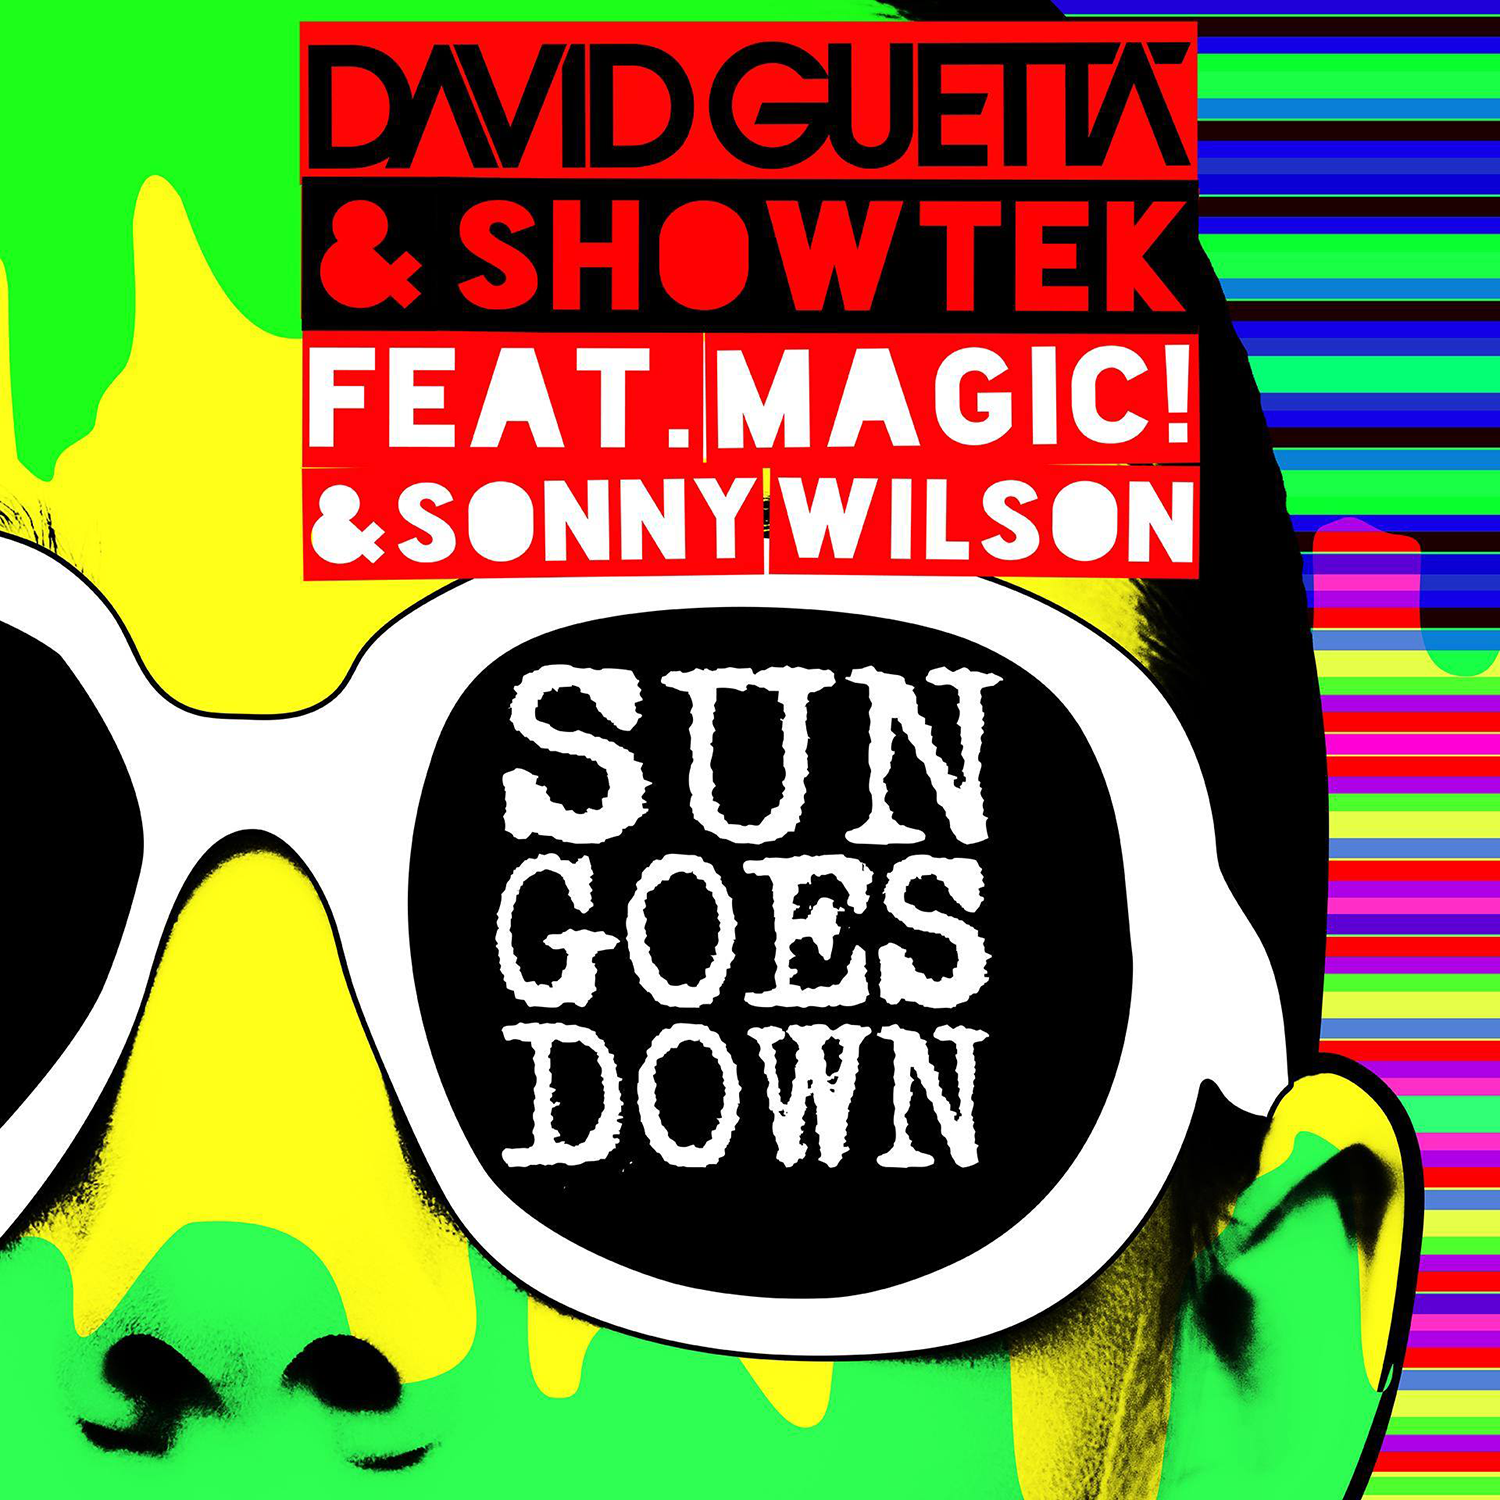 David Guetta, Showtek, Sonny Wilson, Magic! – Sun Goes Down (single cover art)